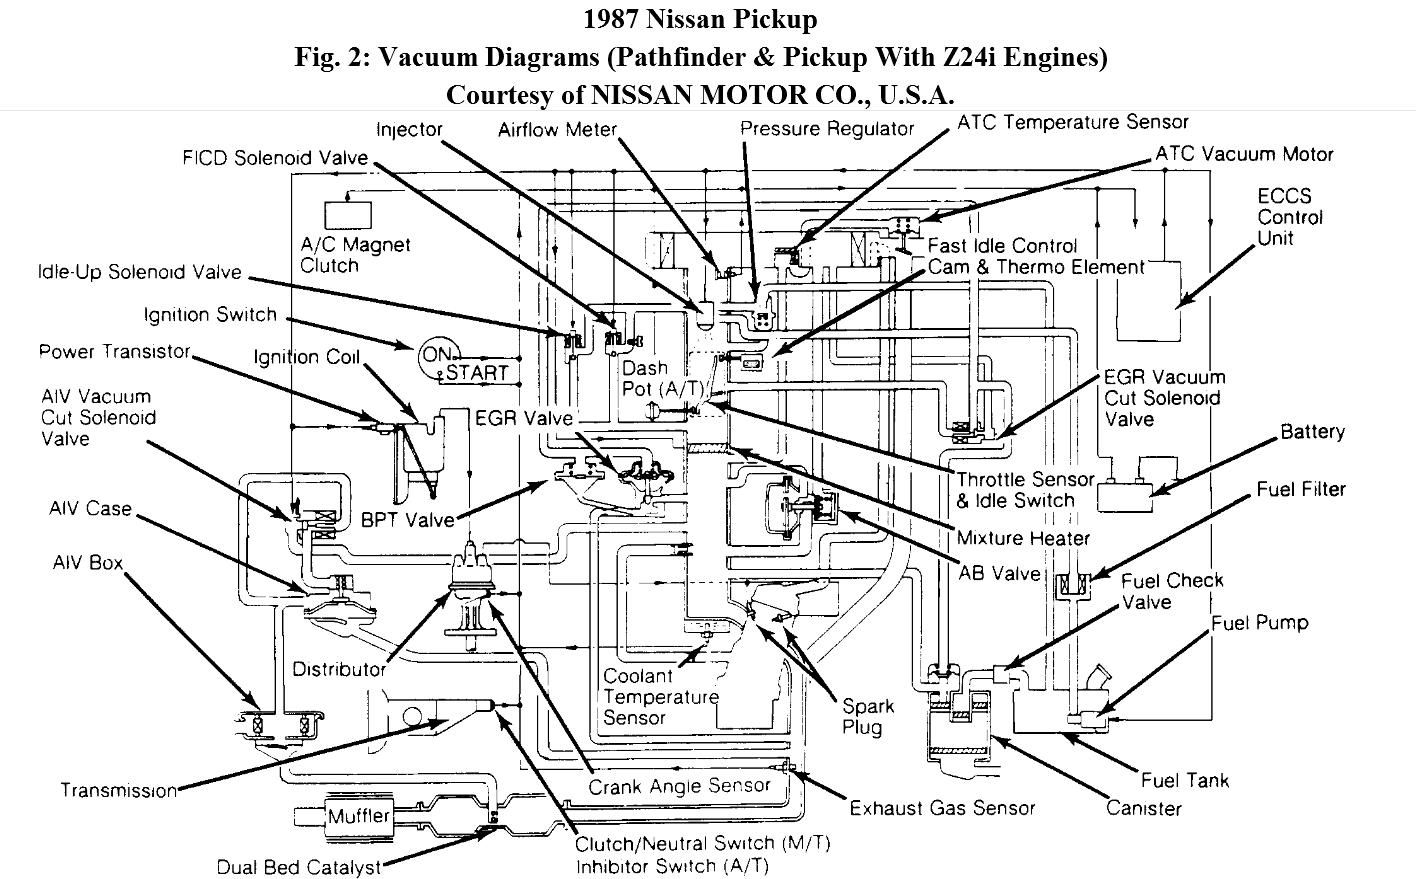 Nissan Truck 24 Liter Engine Diagram Reinvent Your Wiring 2001 Vacuum For A Z24 Four Cylinder Two Wheel Drive Manual 180 Rh 2carpros Com Timing Marks Mitsubishi